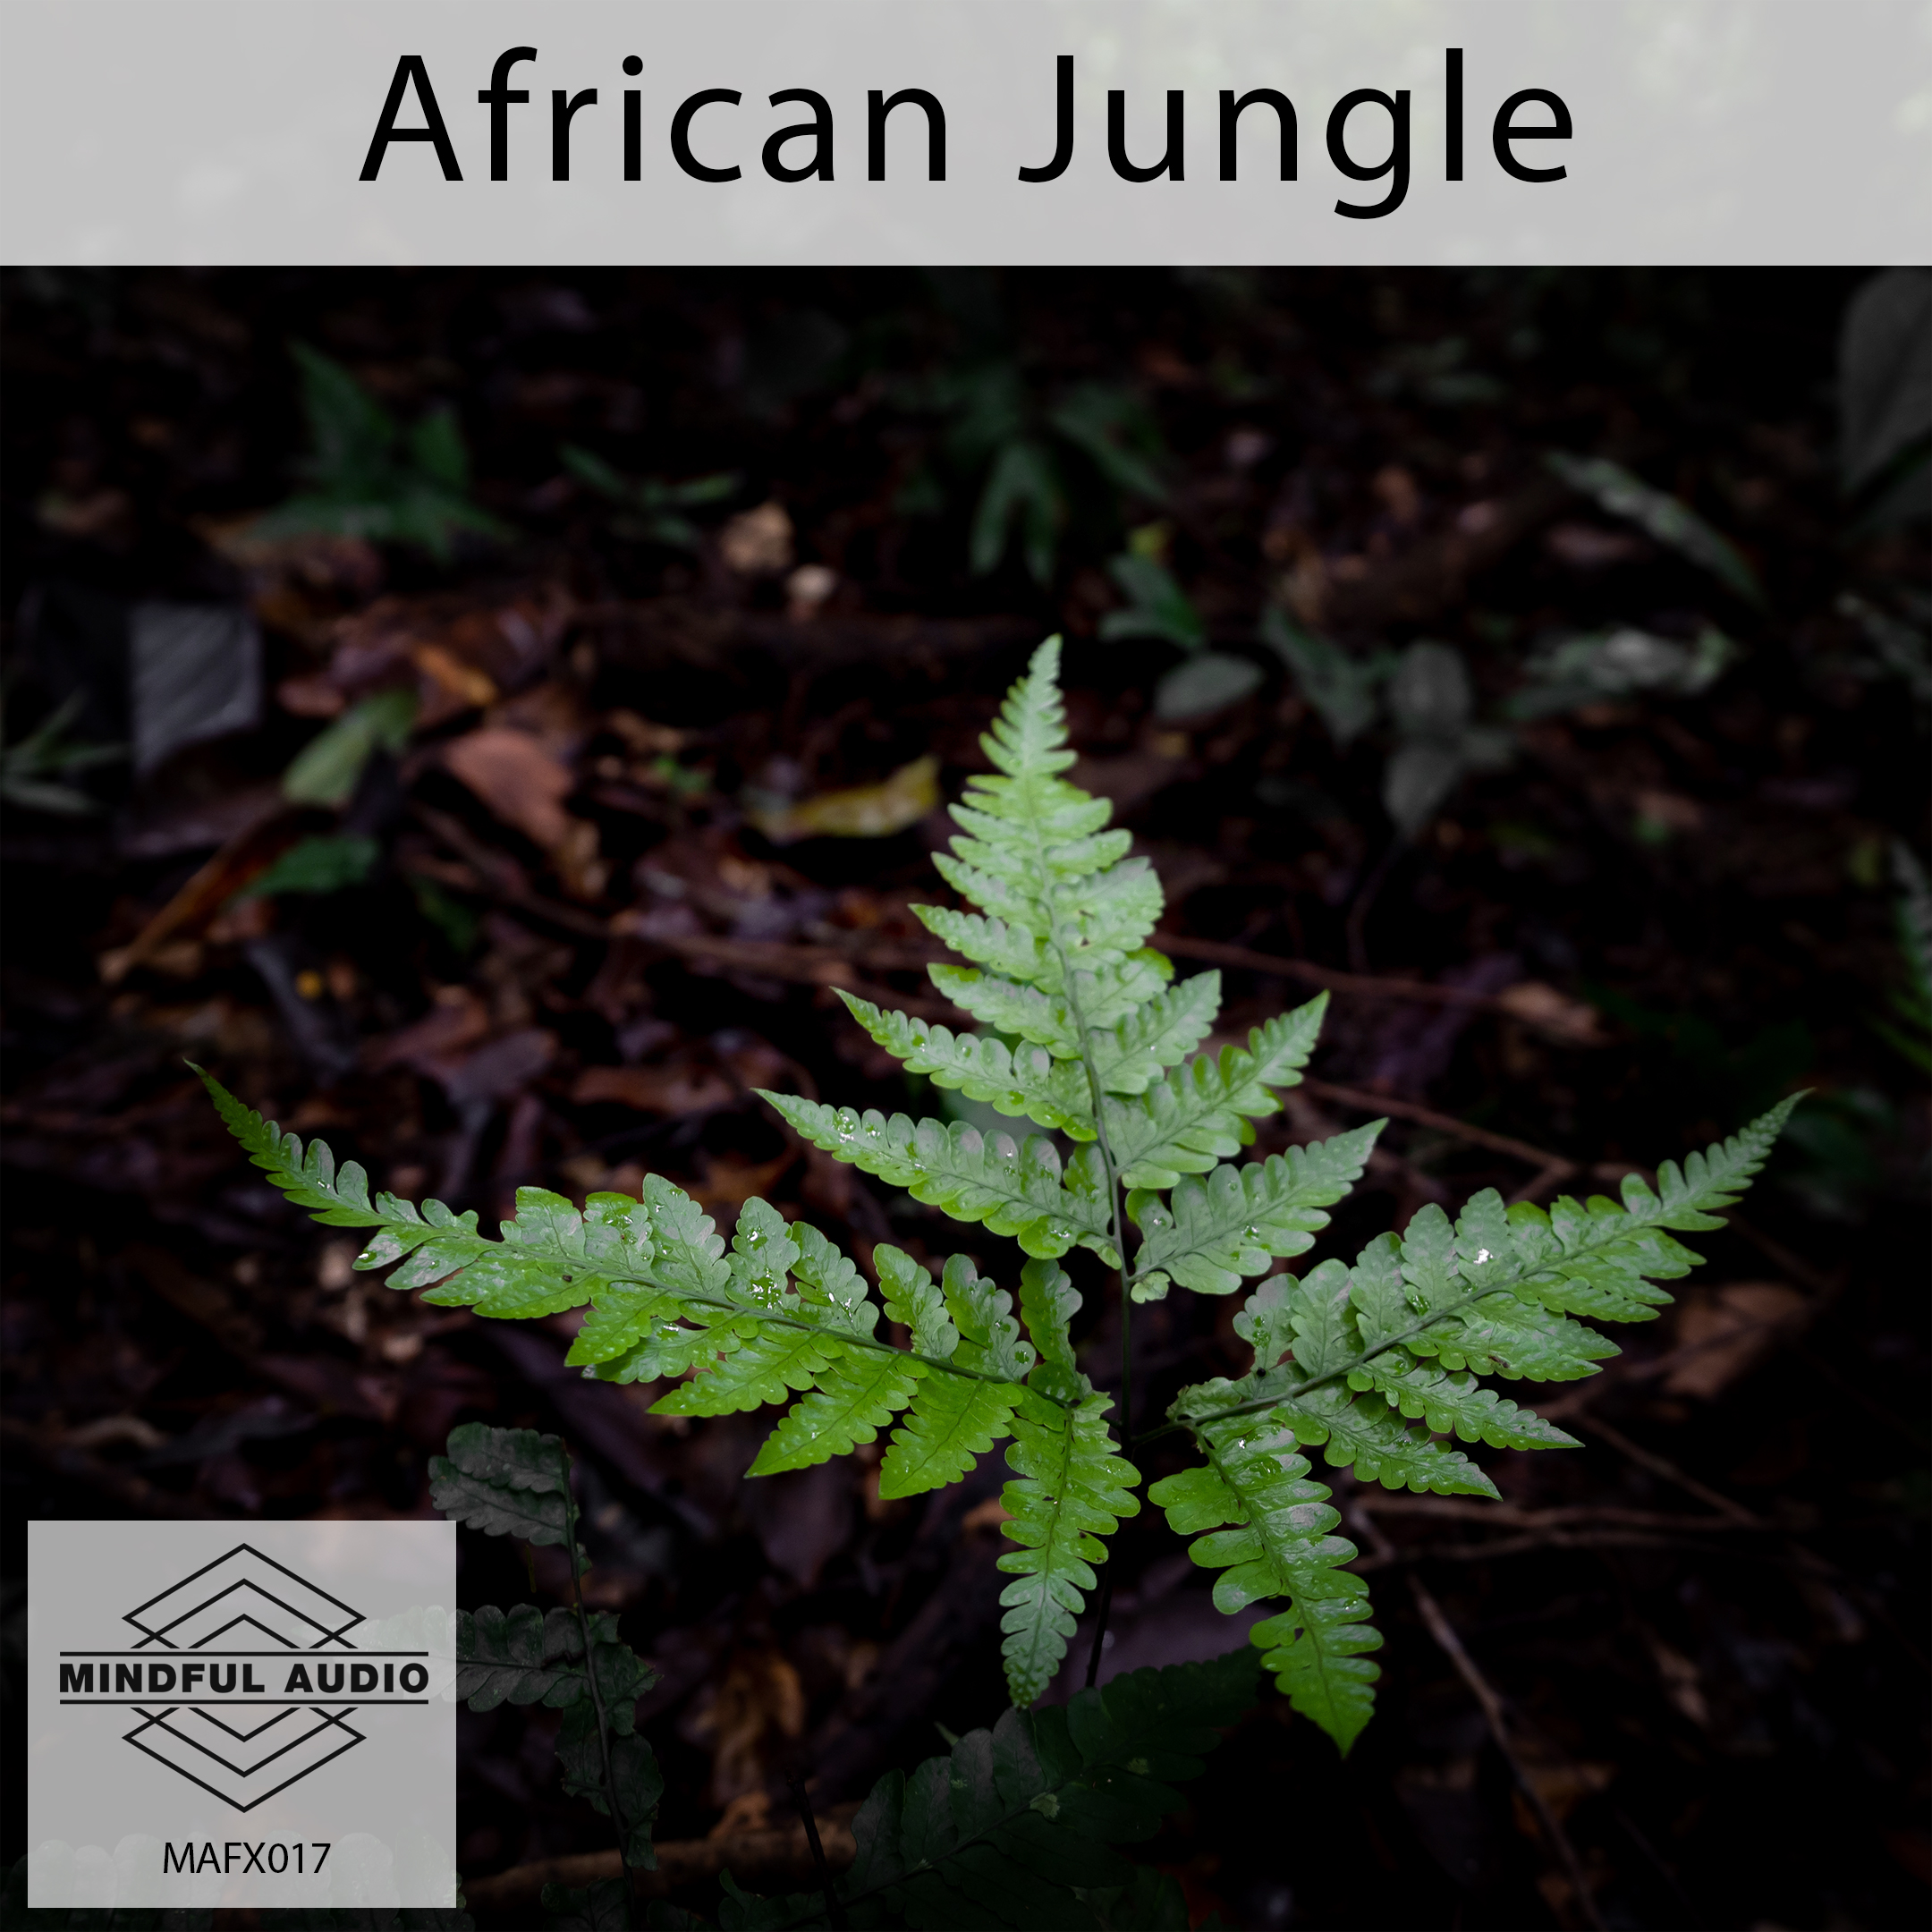 MAFX17 African Jungle cover.jpg